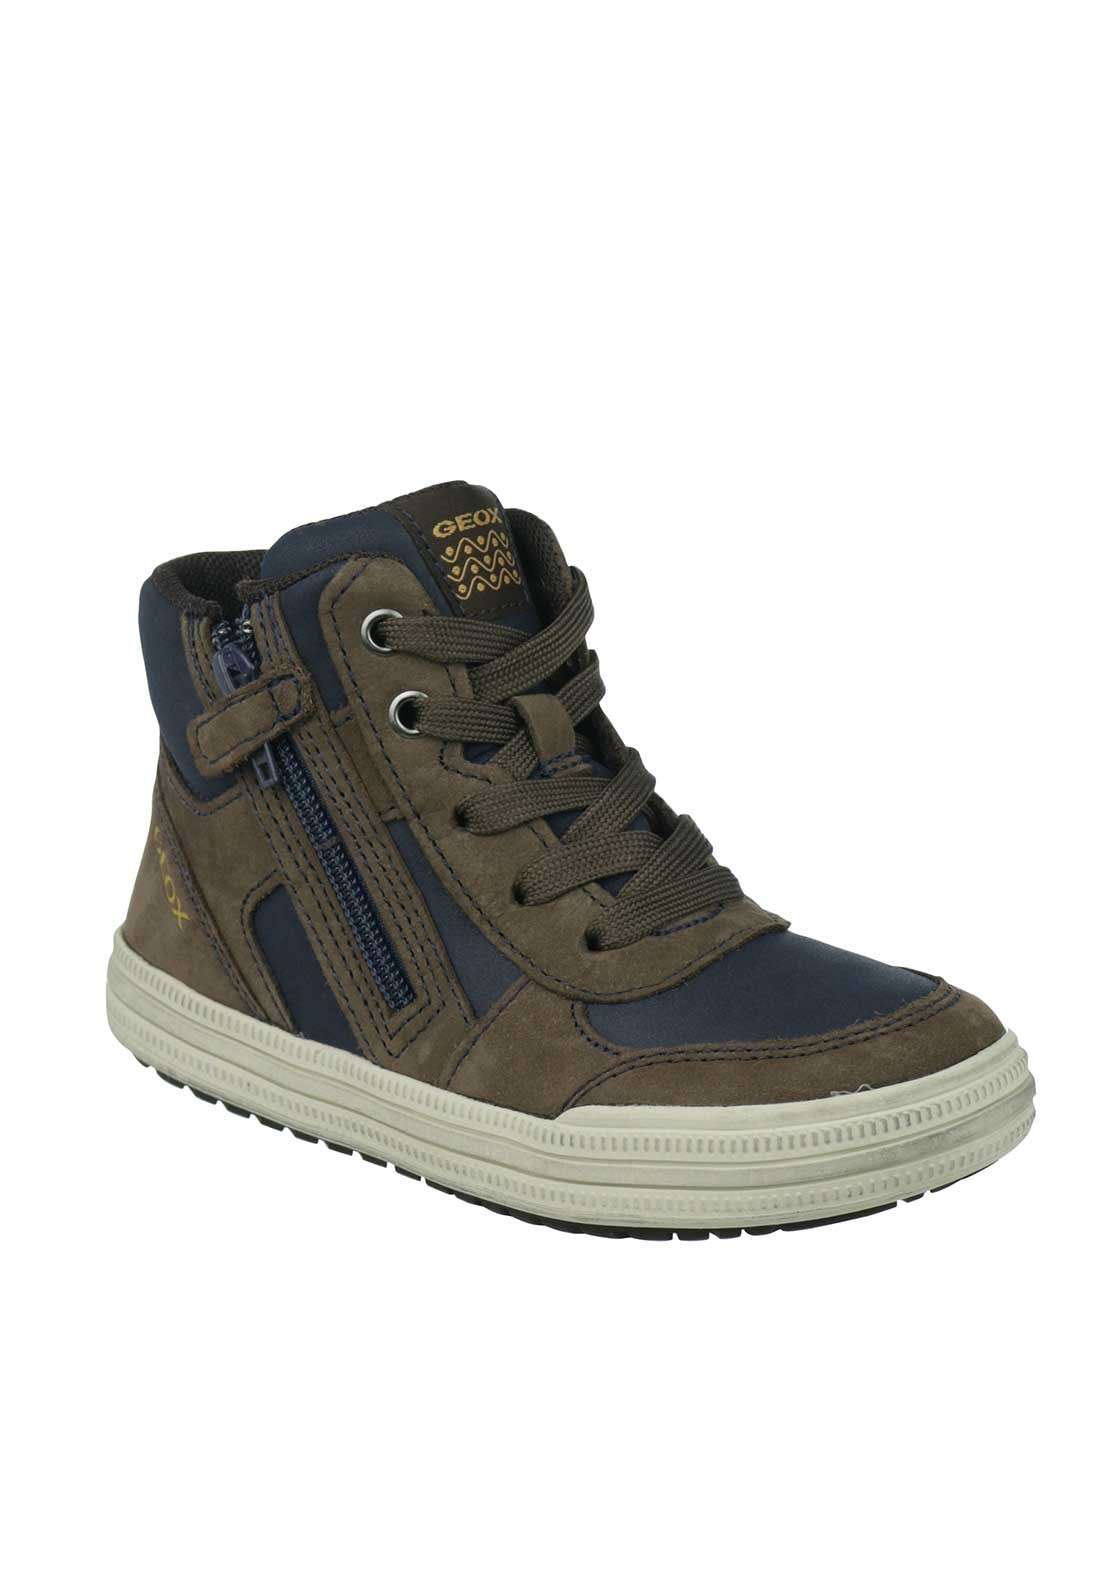 Geox Boys Respira Leather Hi Top Trainers, Brown